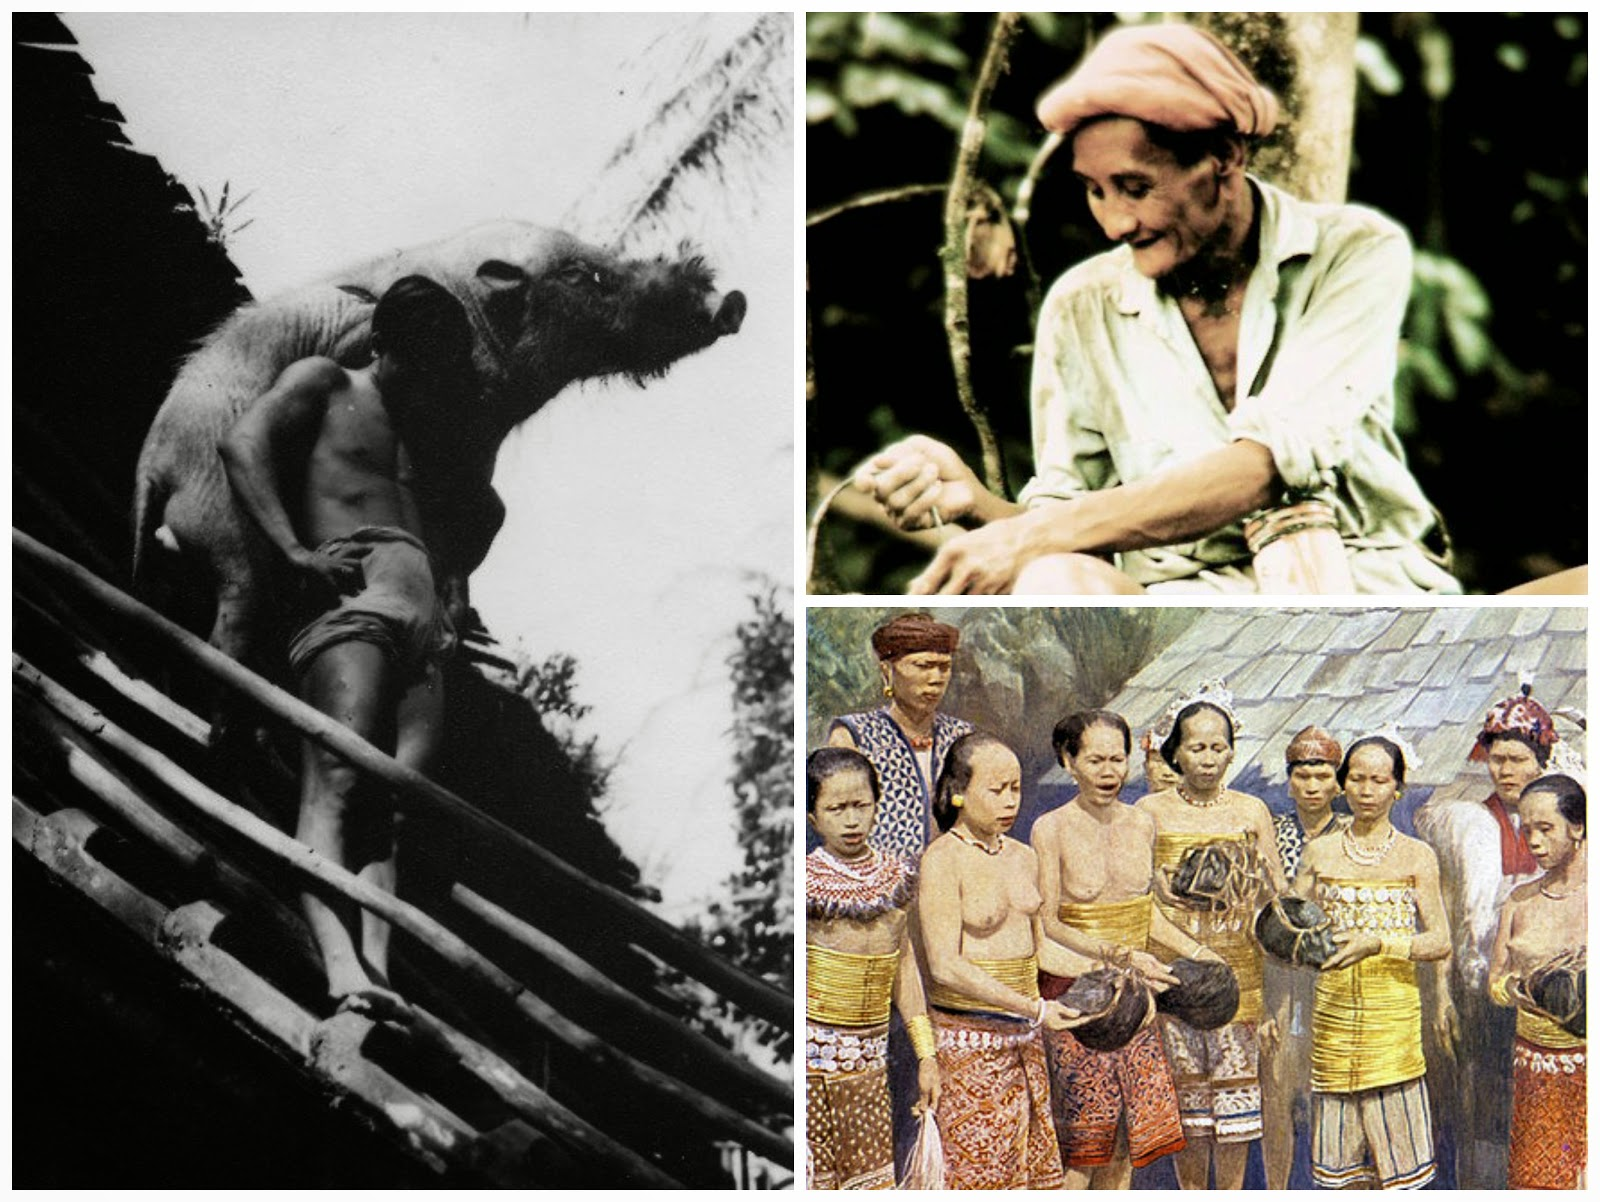 ✿ kingdom of sarawak ✿ ✿ head hunters kingdom of sarawak ✿ upon arrival at its main entrance their longhouses they would shout as loudly heart as a warning indicating they have reached and it will also be rewarded